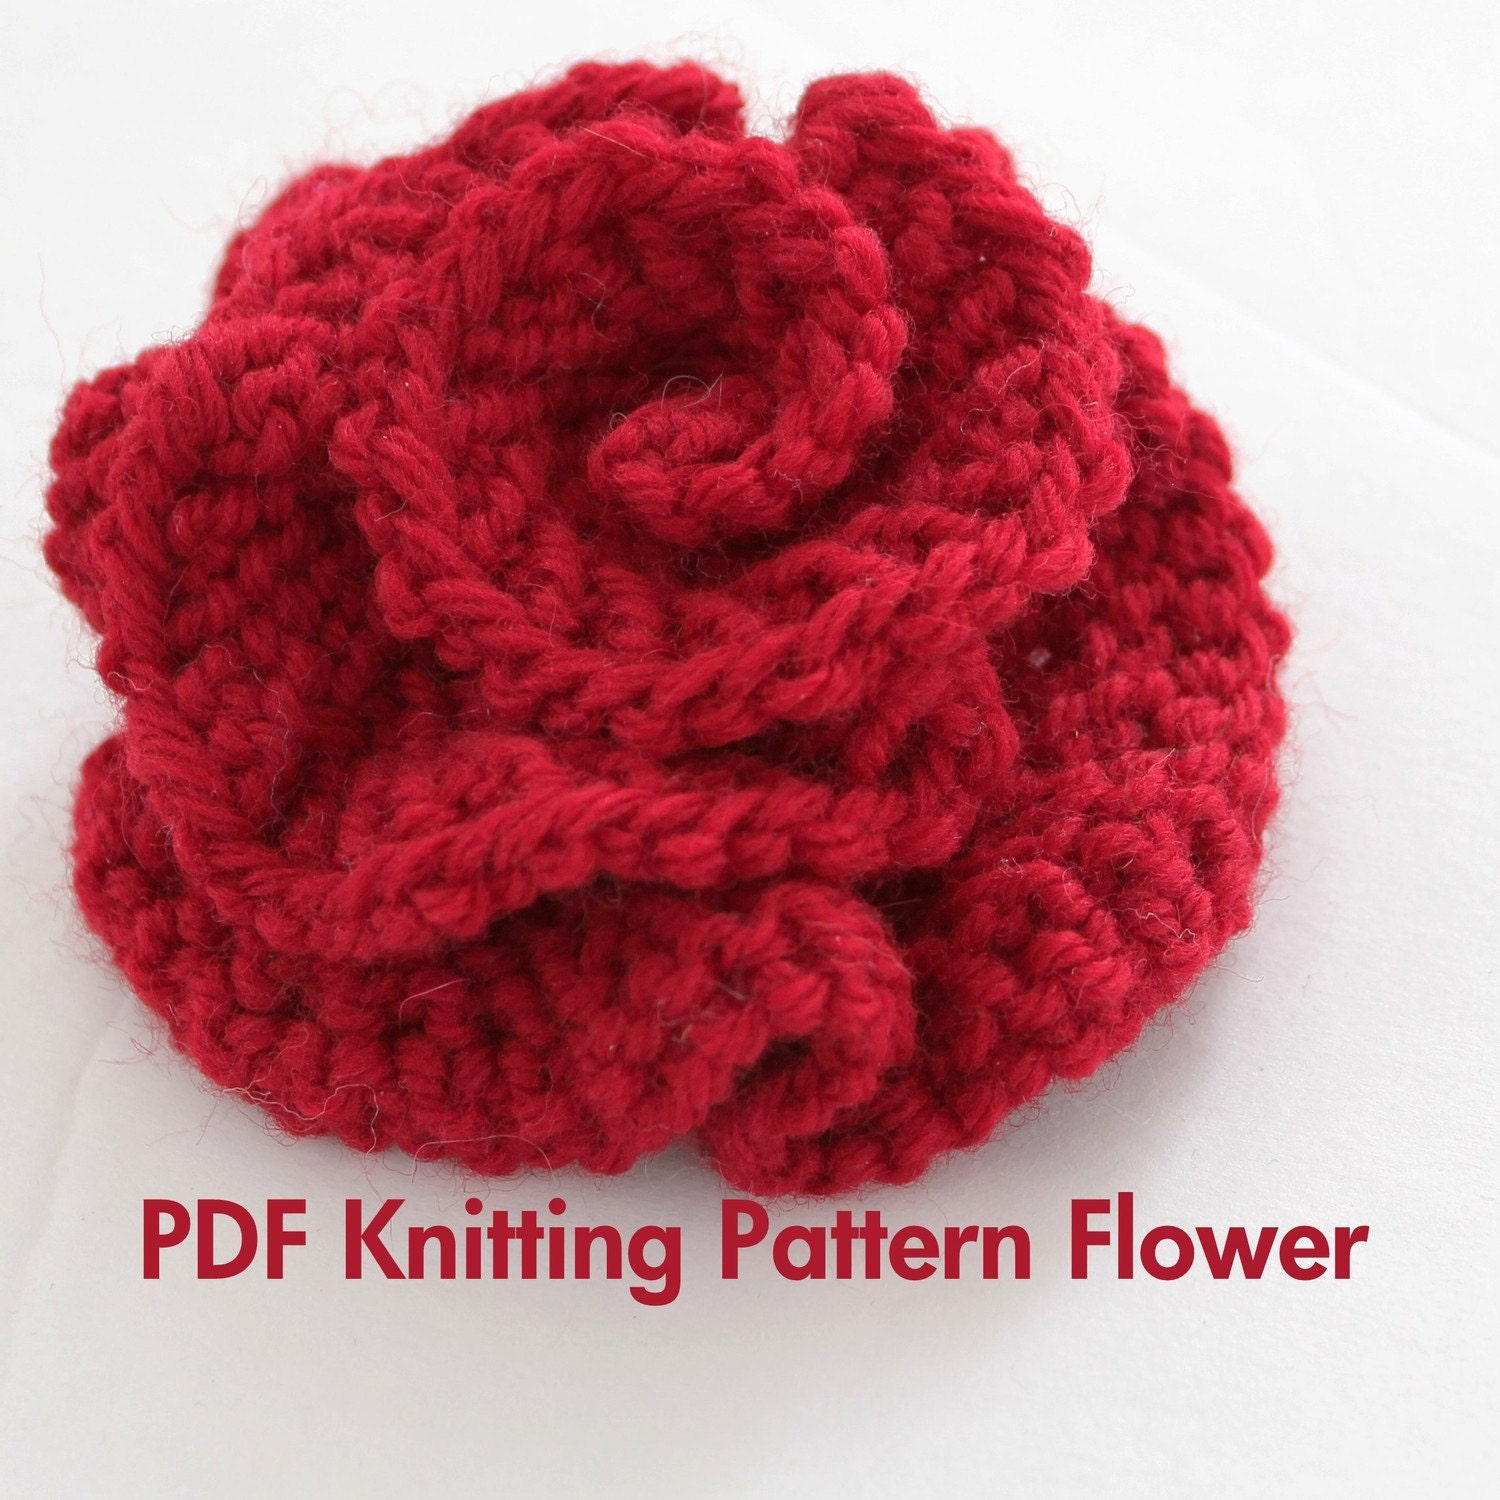 Knitting Pattern For A Headband With Flower : KNITTING FLOWER PATTERNS   Browse Patterns